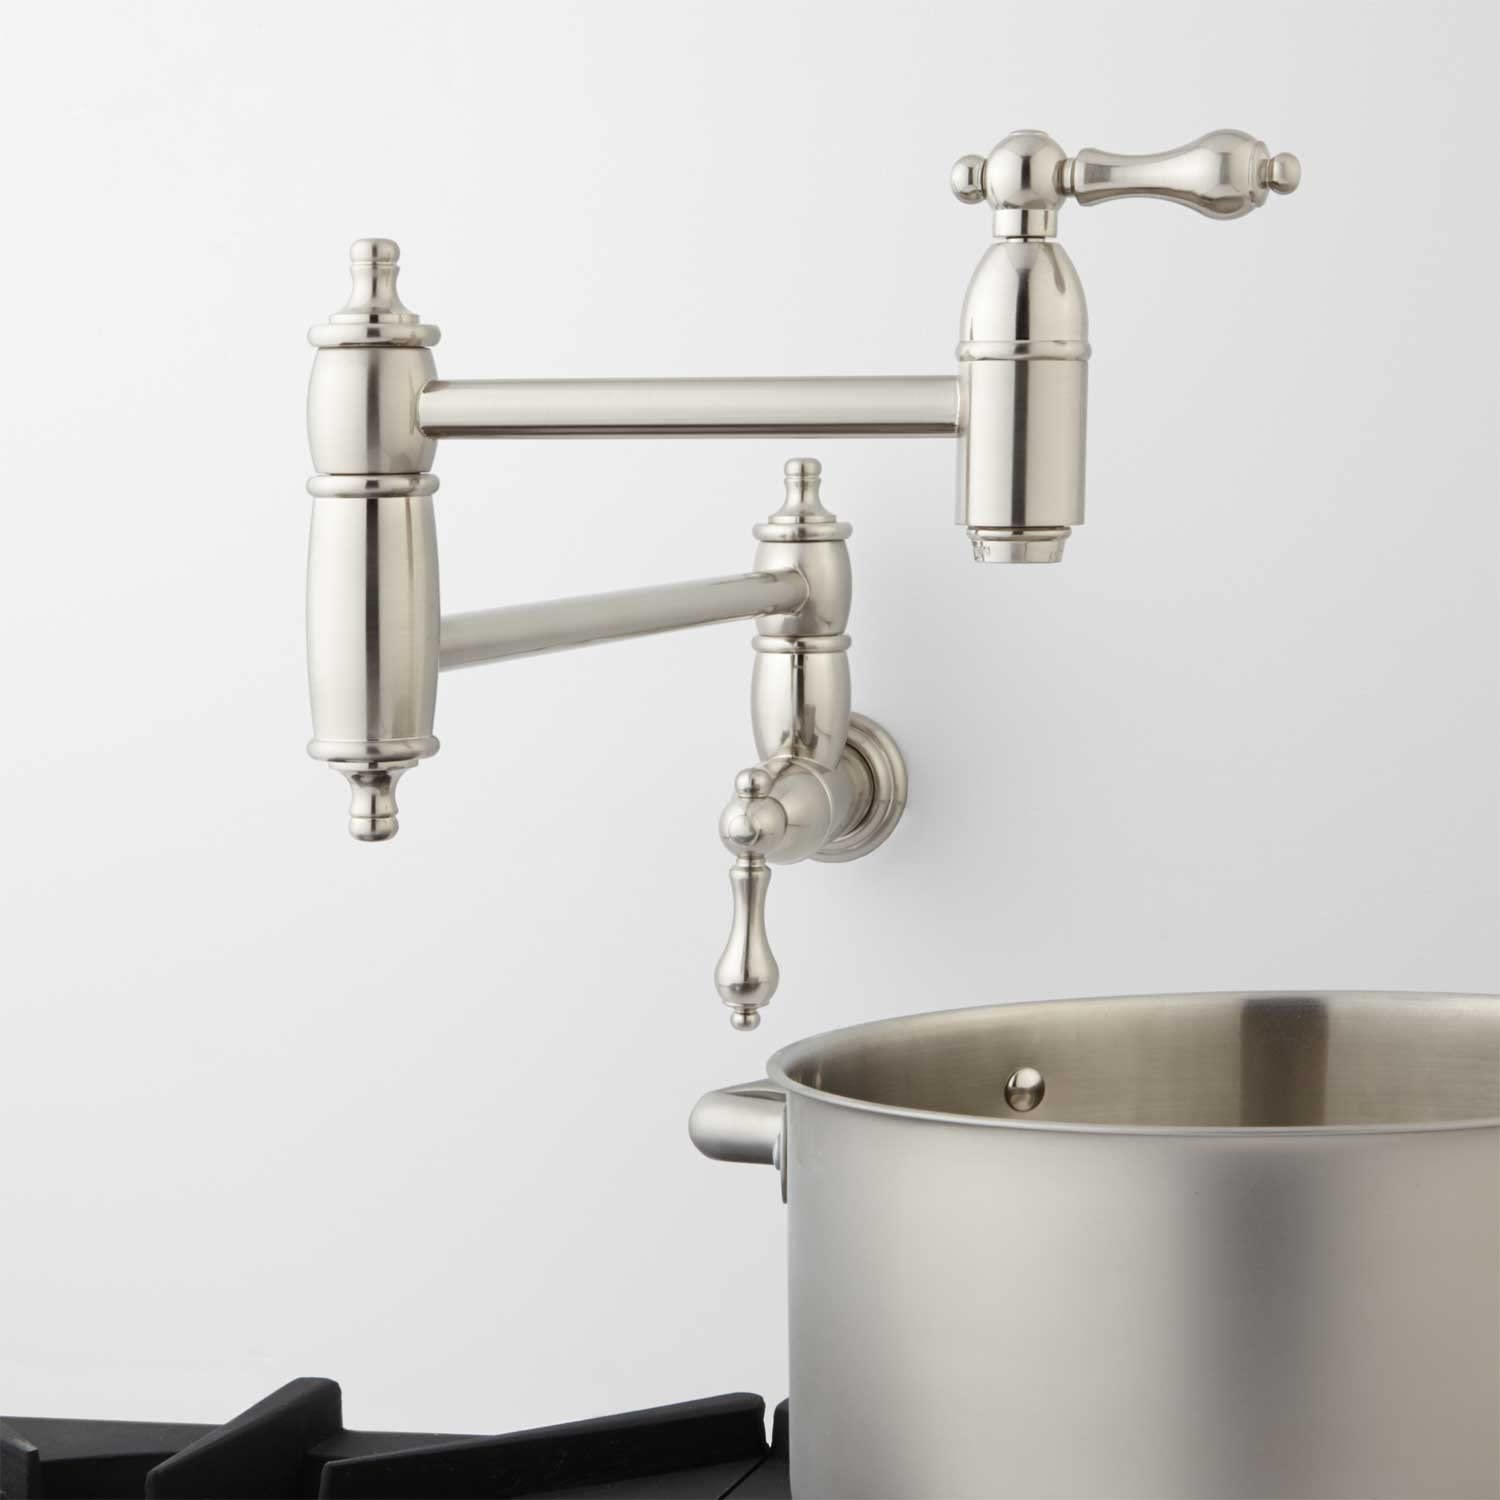 Signature Hardware 329234 Augusta 1.8 GPM Double Handle Wall Mounted Pot Filler